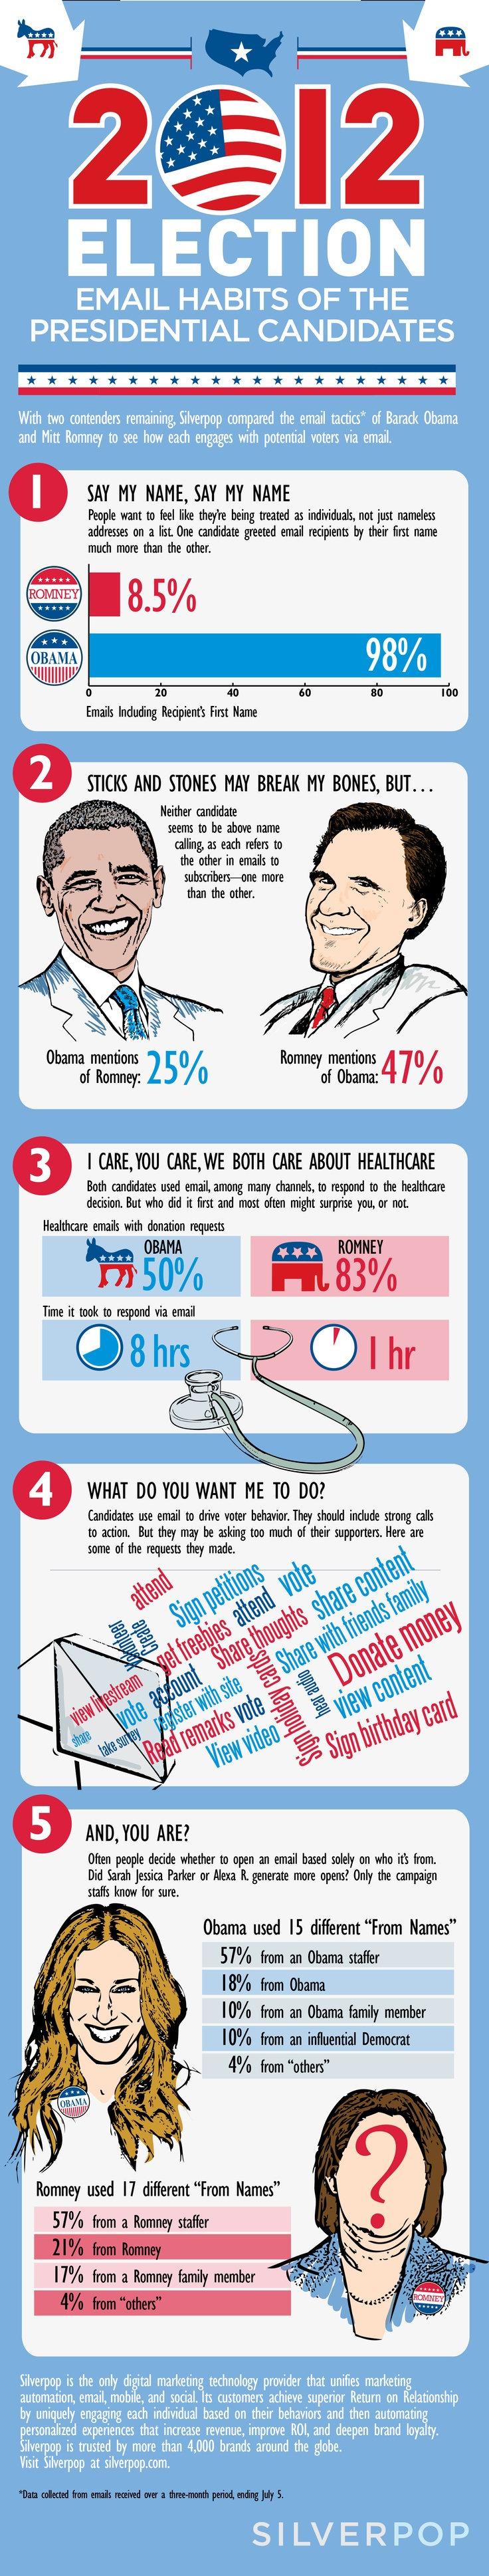 2012 Election: Email Habits Of The Presidential Candidates [INFOGRAPHIC]